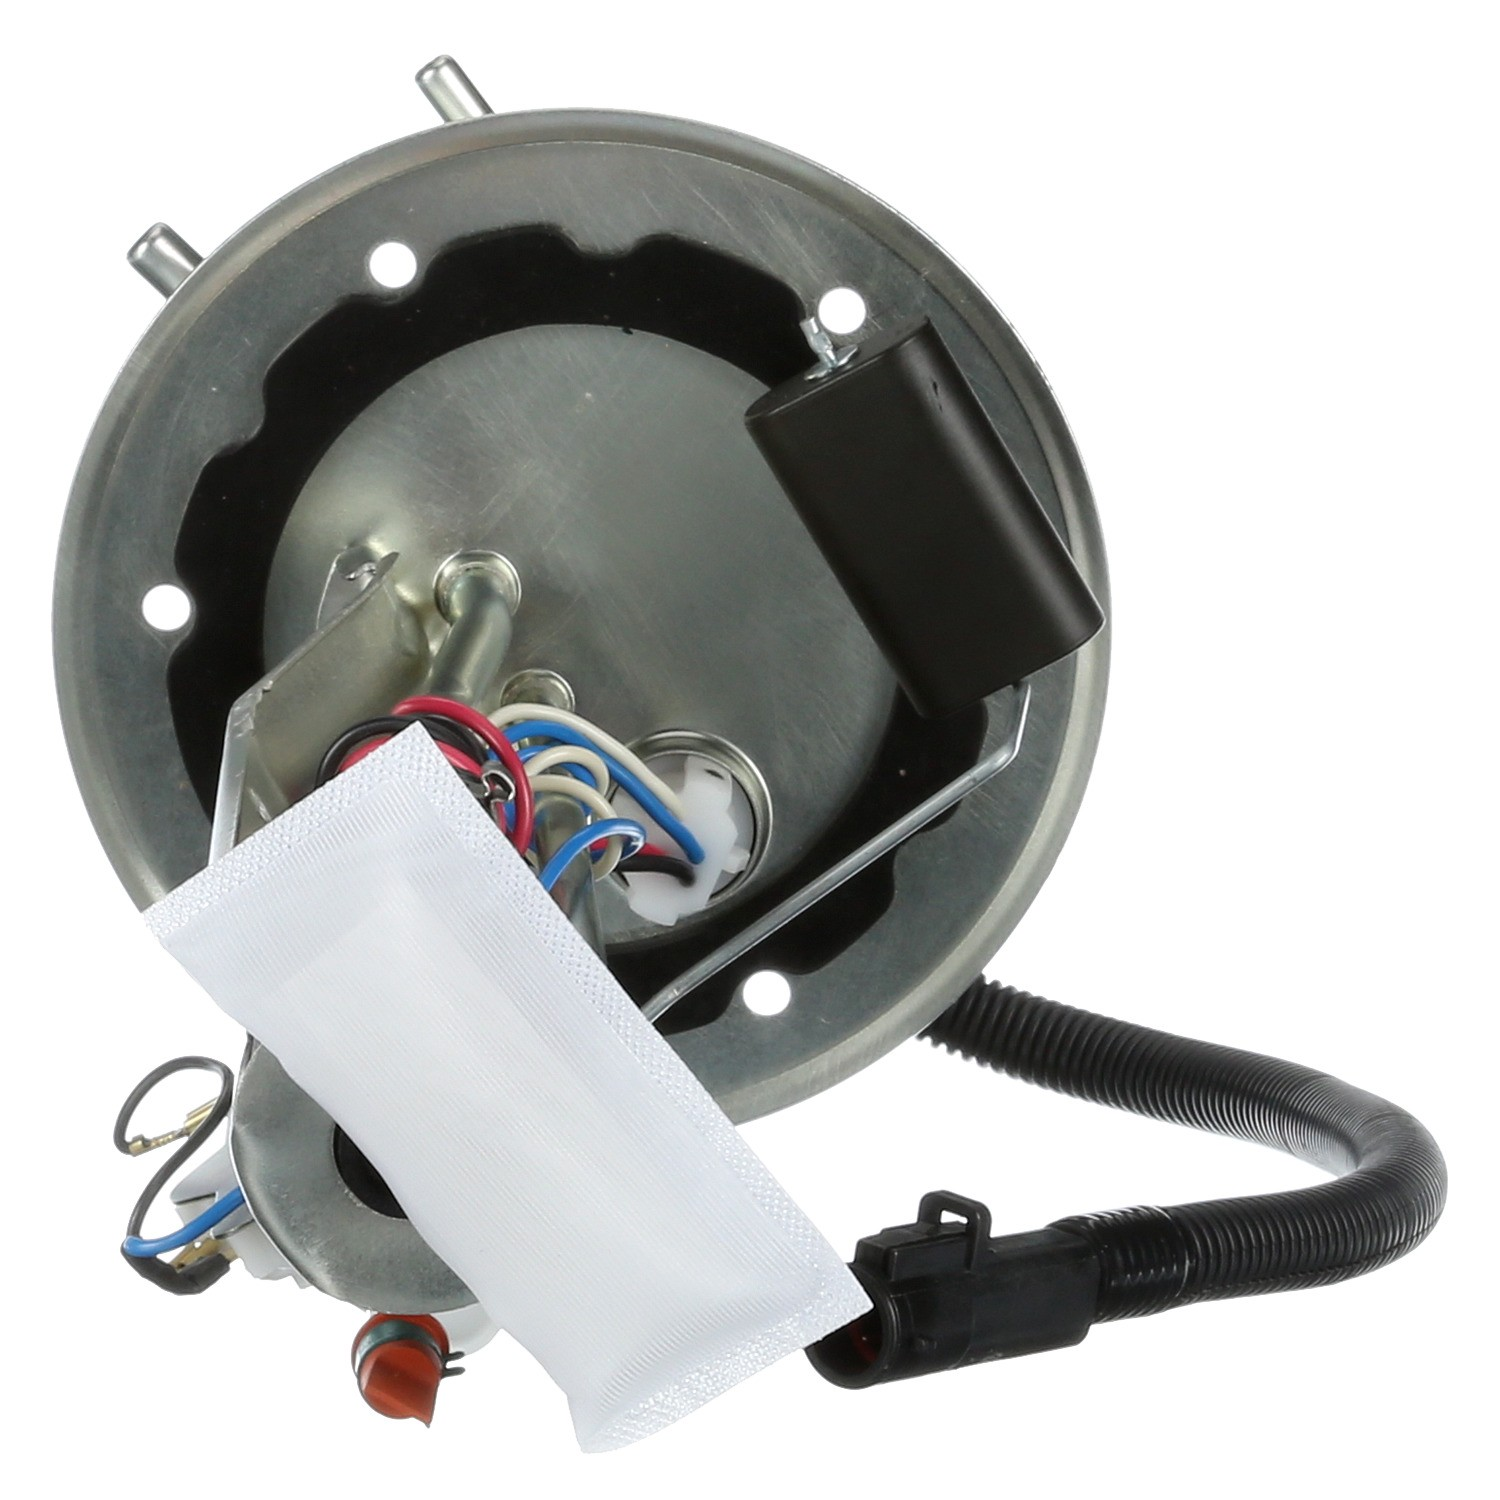 2000 Ford F-150 Fuel Pump and Sender Assembly